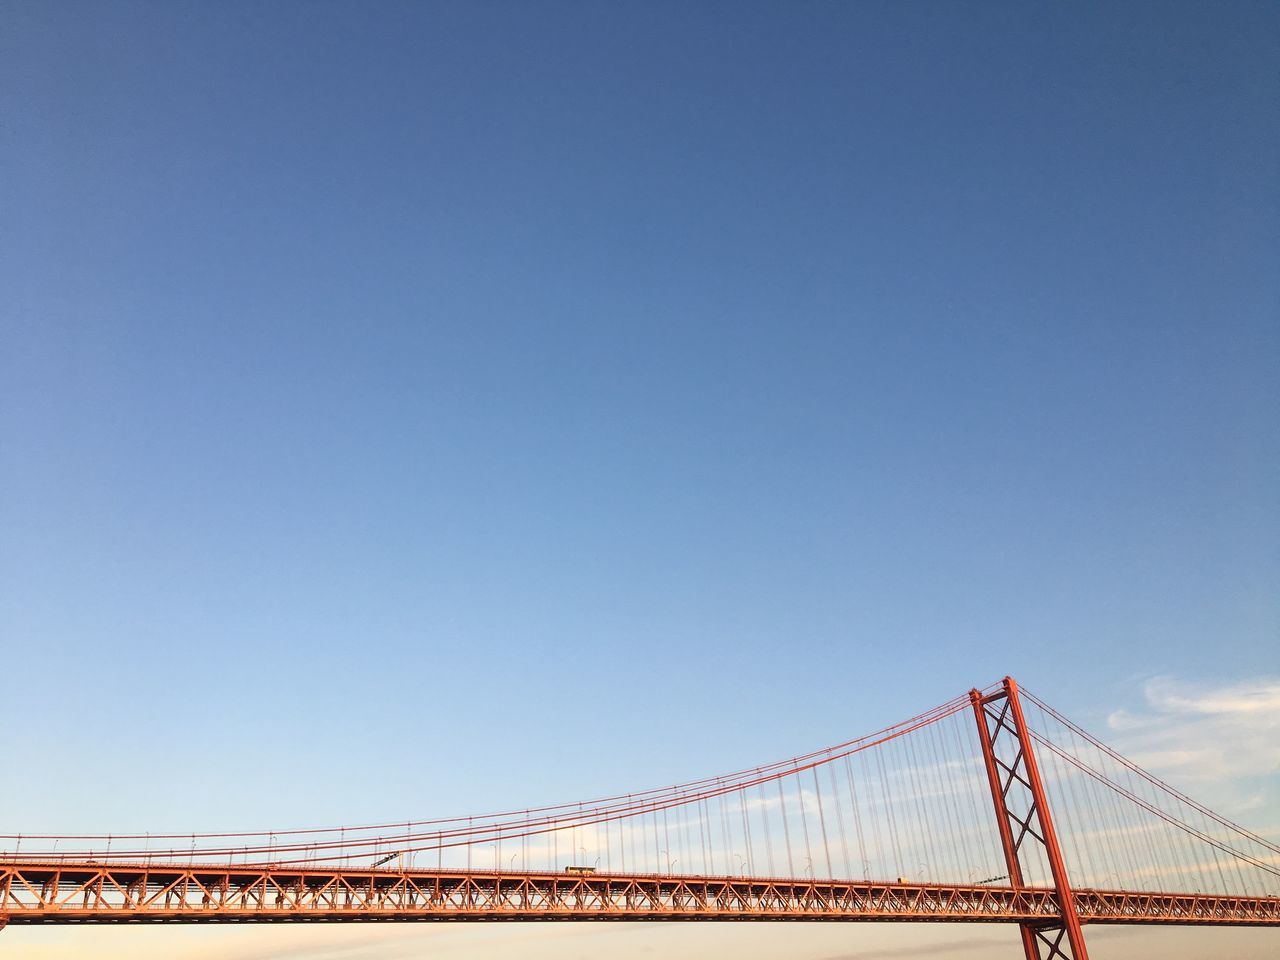 it's incredibly noisy around there Blue Bridge City Clear Sky Copy Space Day Lisbon Lisbonlovers No People Outdoors Ponte 25 De Abril Portugal Simplicity Sky Travel Destinations Travel Photography Travelphotography Unusual Perspective Vacation Time